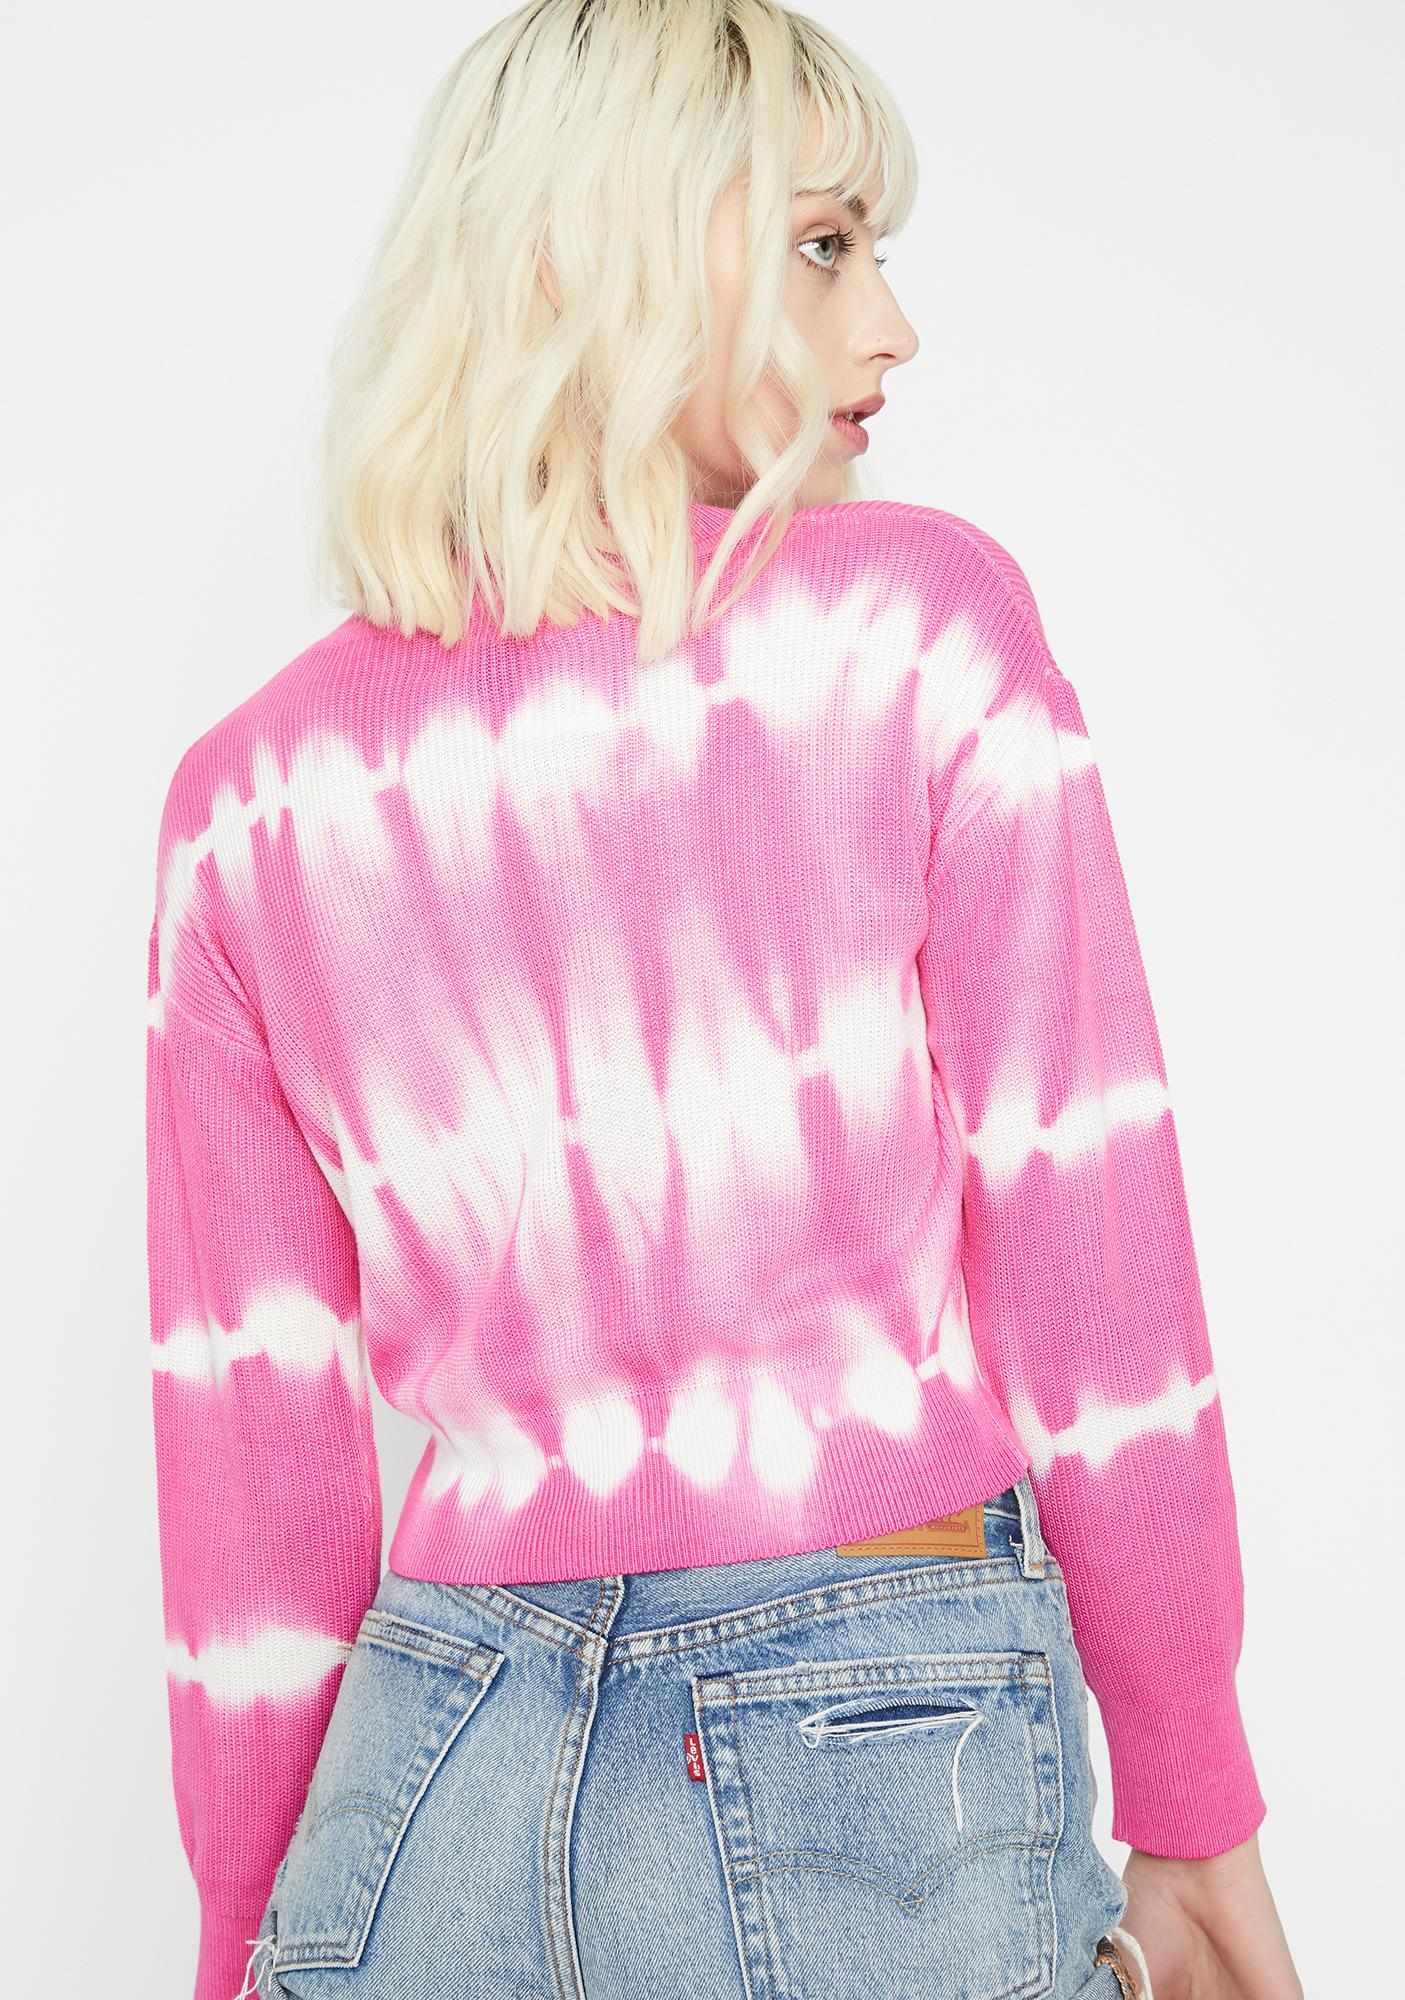 Candy Chillin' Out Tie Dye Sweater